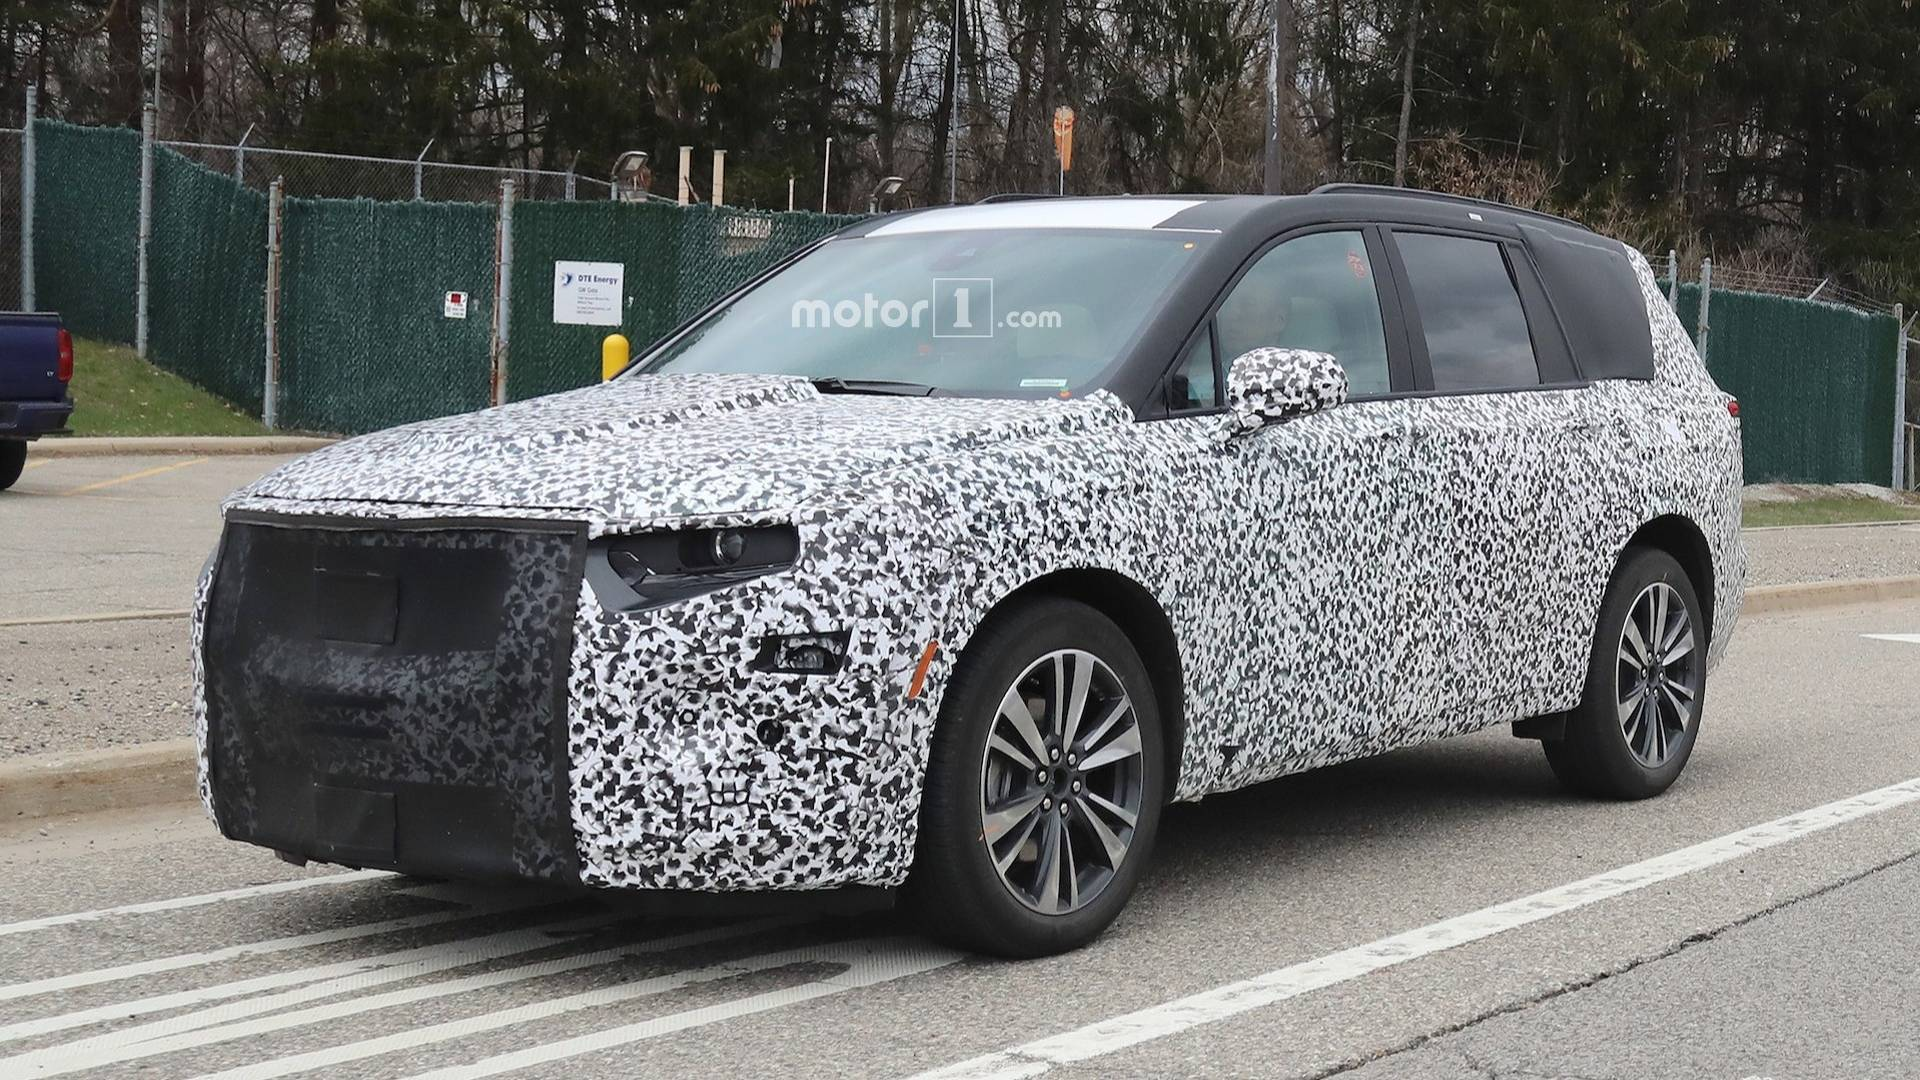 Three Row Cadillac Xt6 Suv Caught Testing